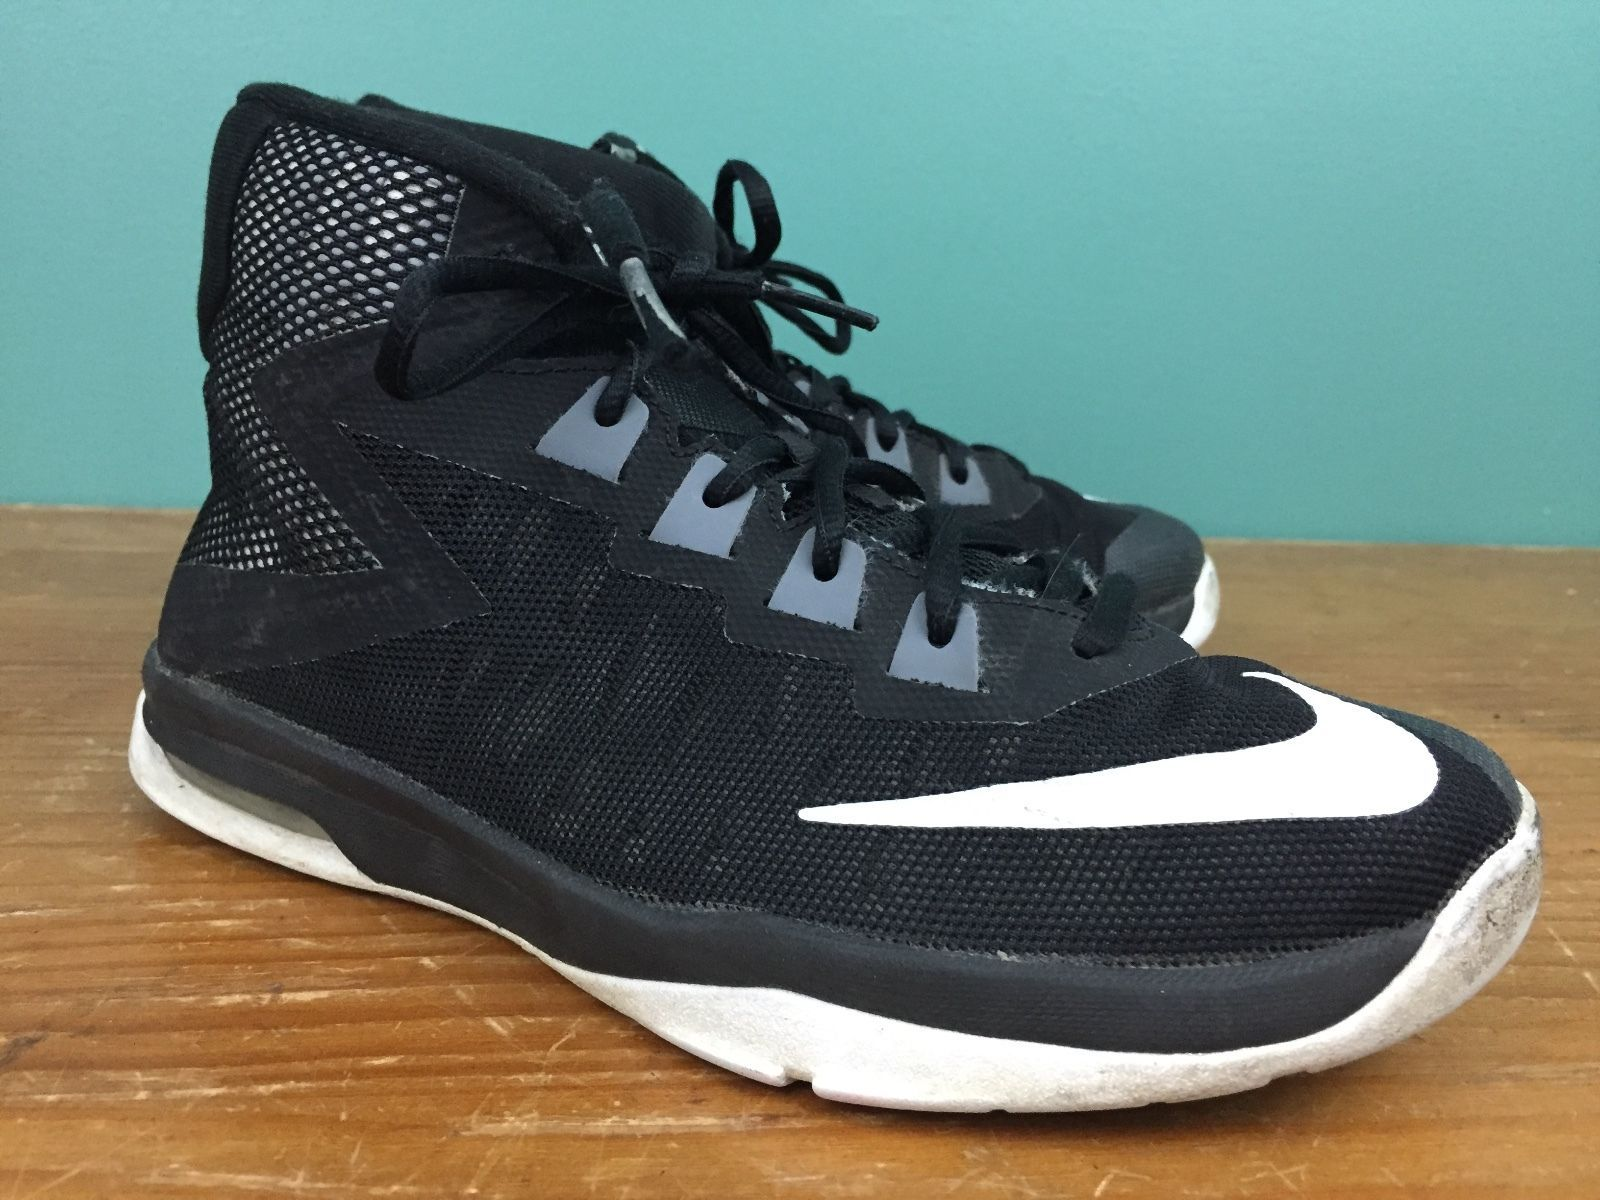 32790691ddf Nike Air Devosion Youth Basketball Shoes - and 50 similar items. S l1600